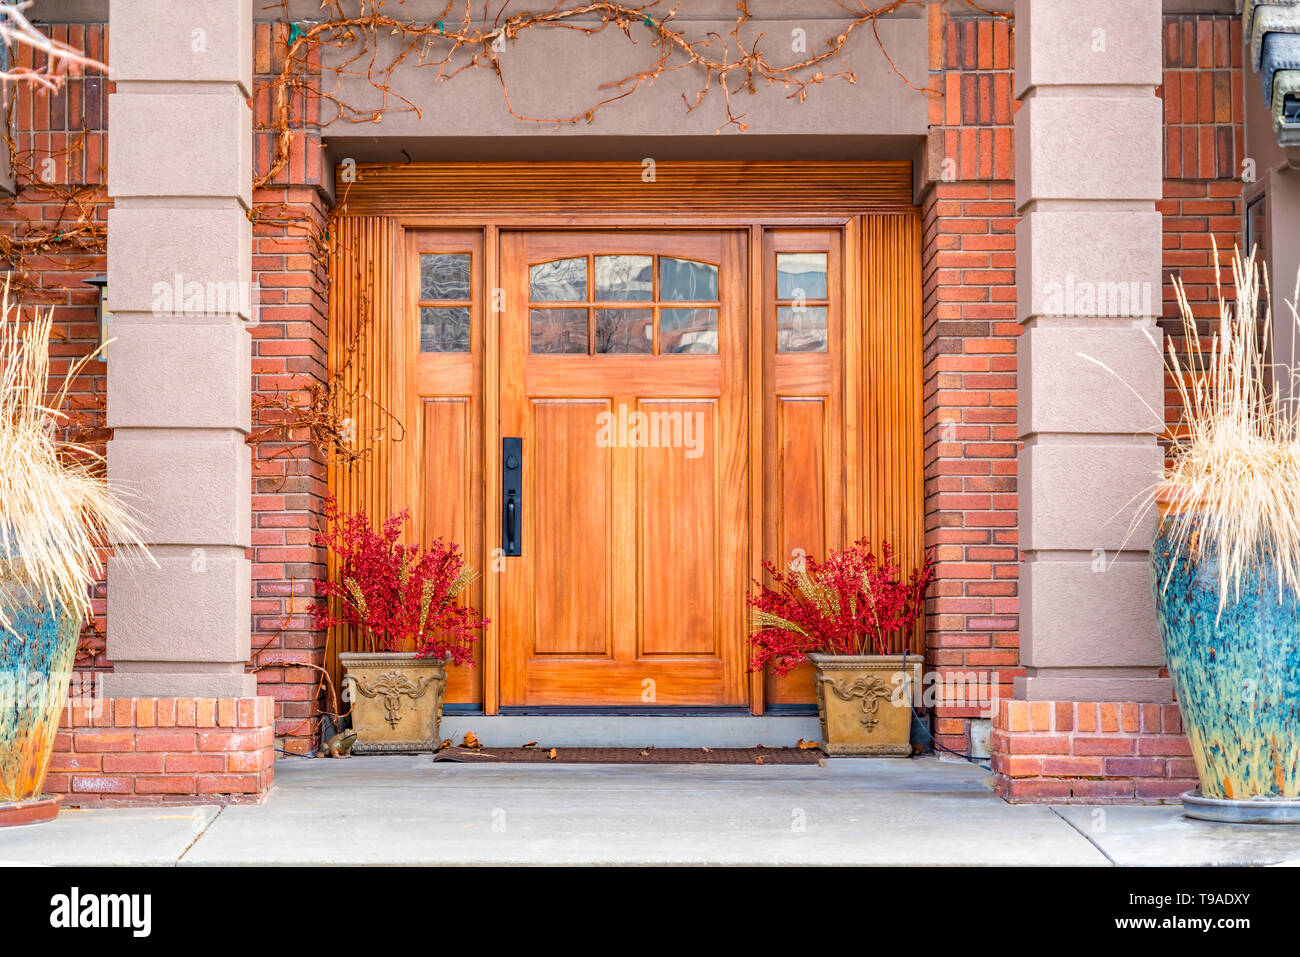 Brown Wooden Front Door With Decorative Glass Panels At The Entrance Of A Home Stock Photo Alamy